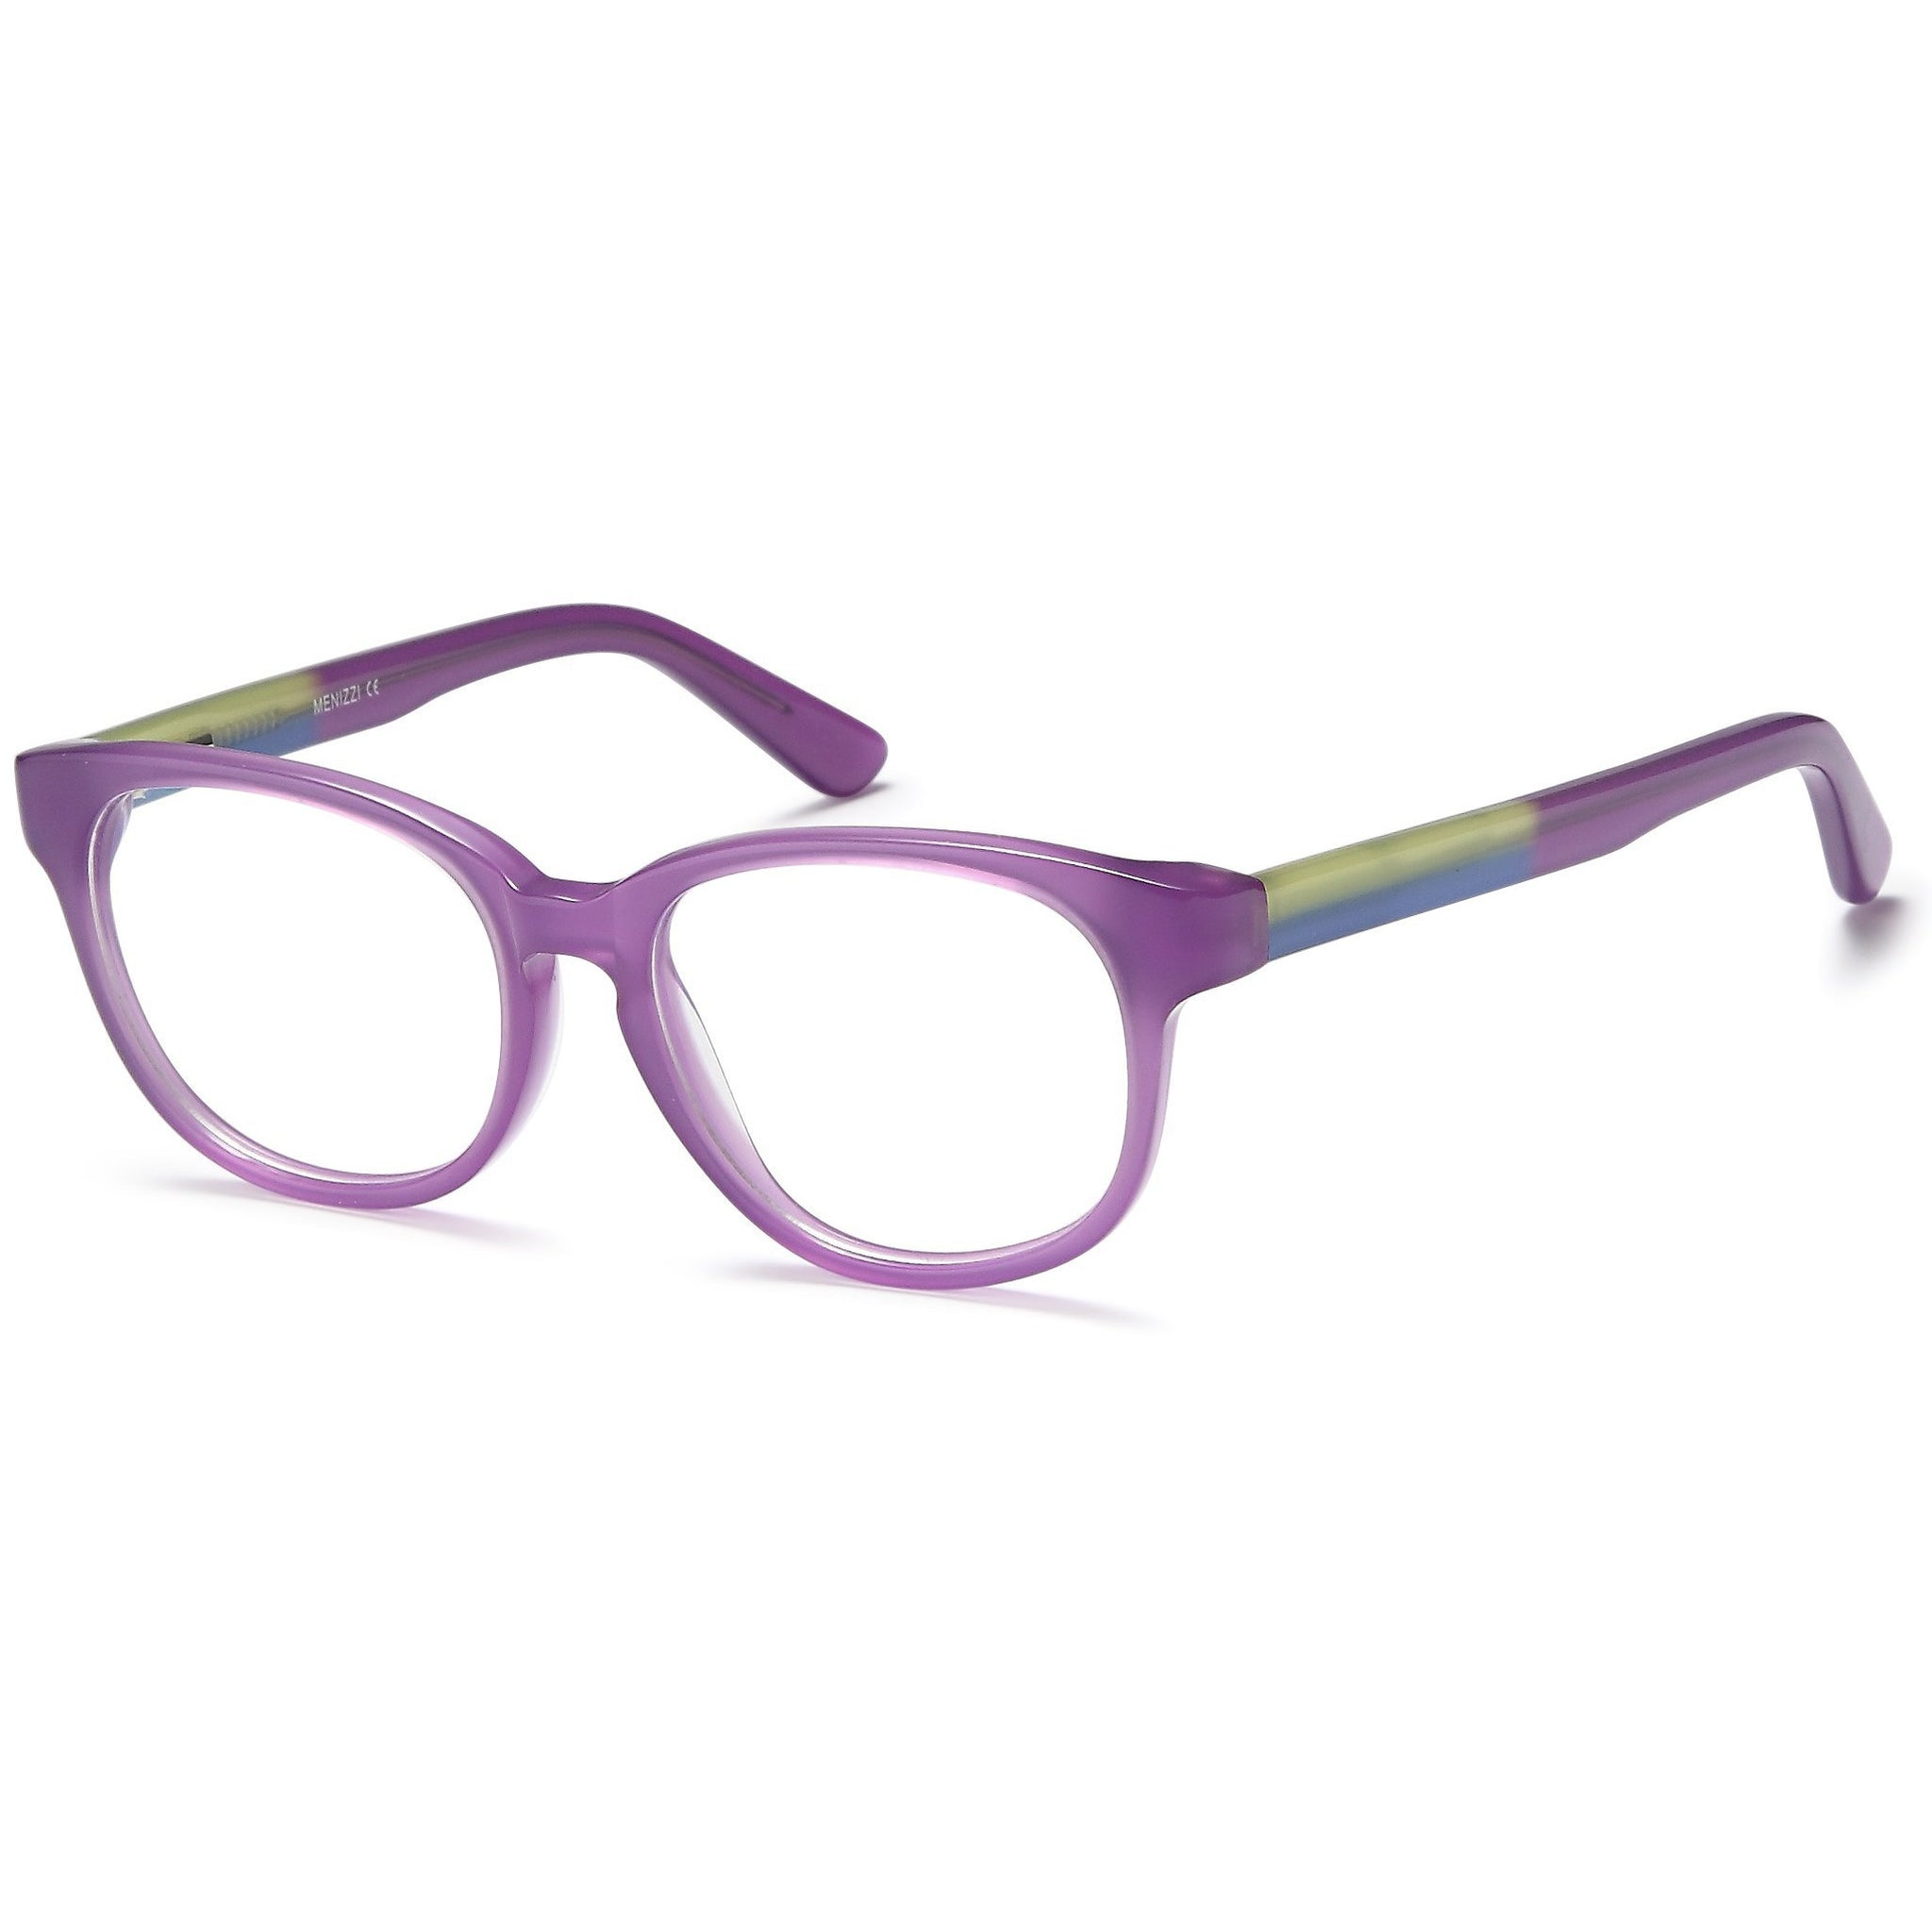 Menizzi Kids Prescription Glasses M3087K Eyeglasses Frames